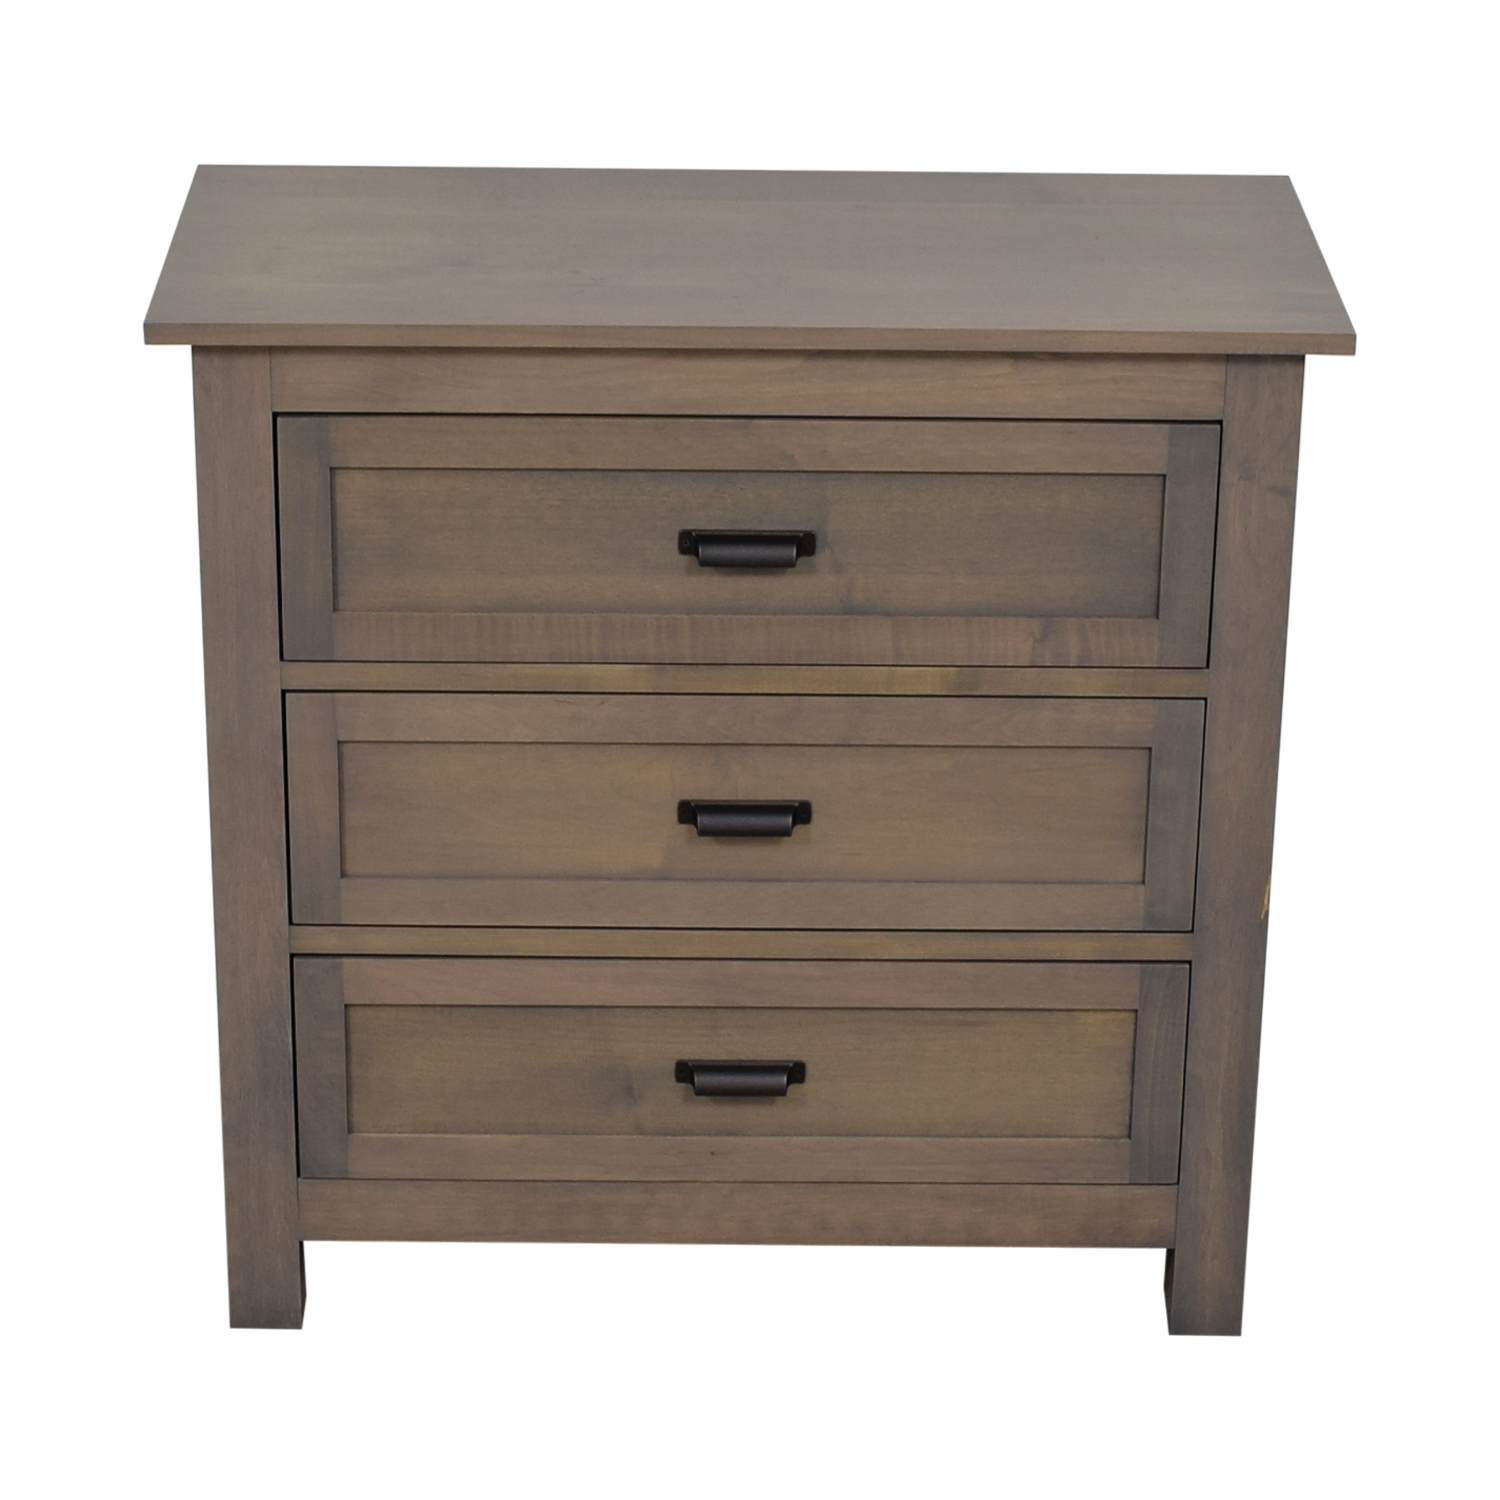 Room & Board Room & Board Bennett Three Drawer Dresser nj